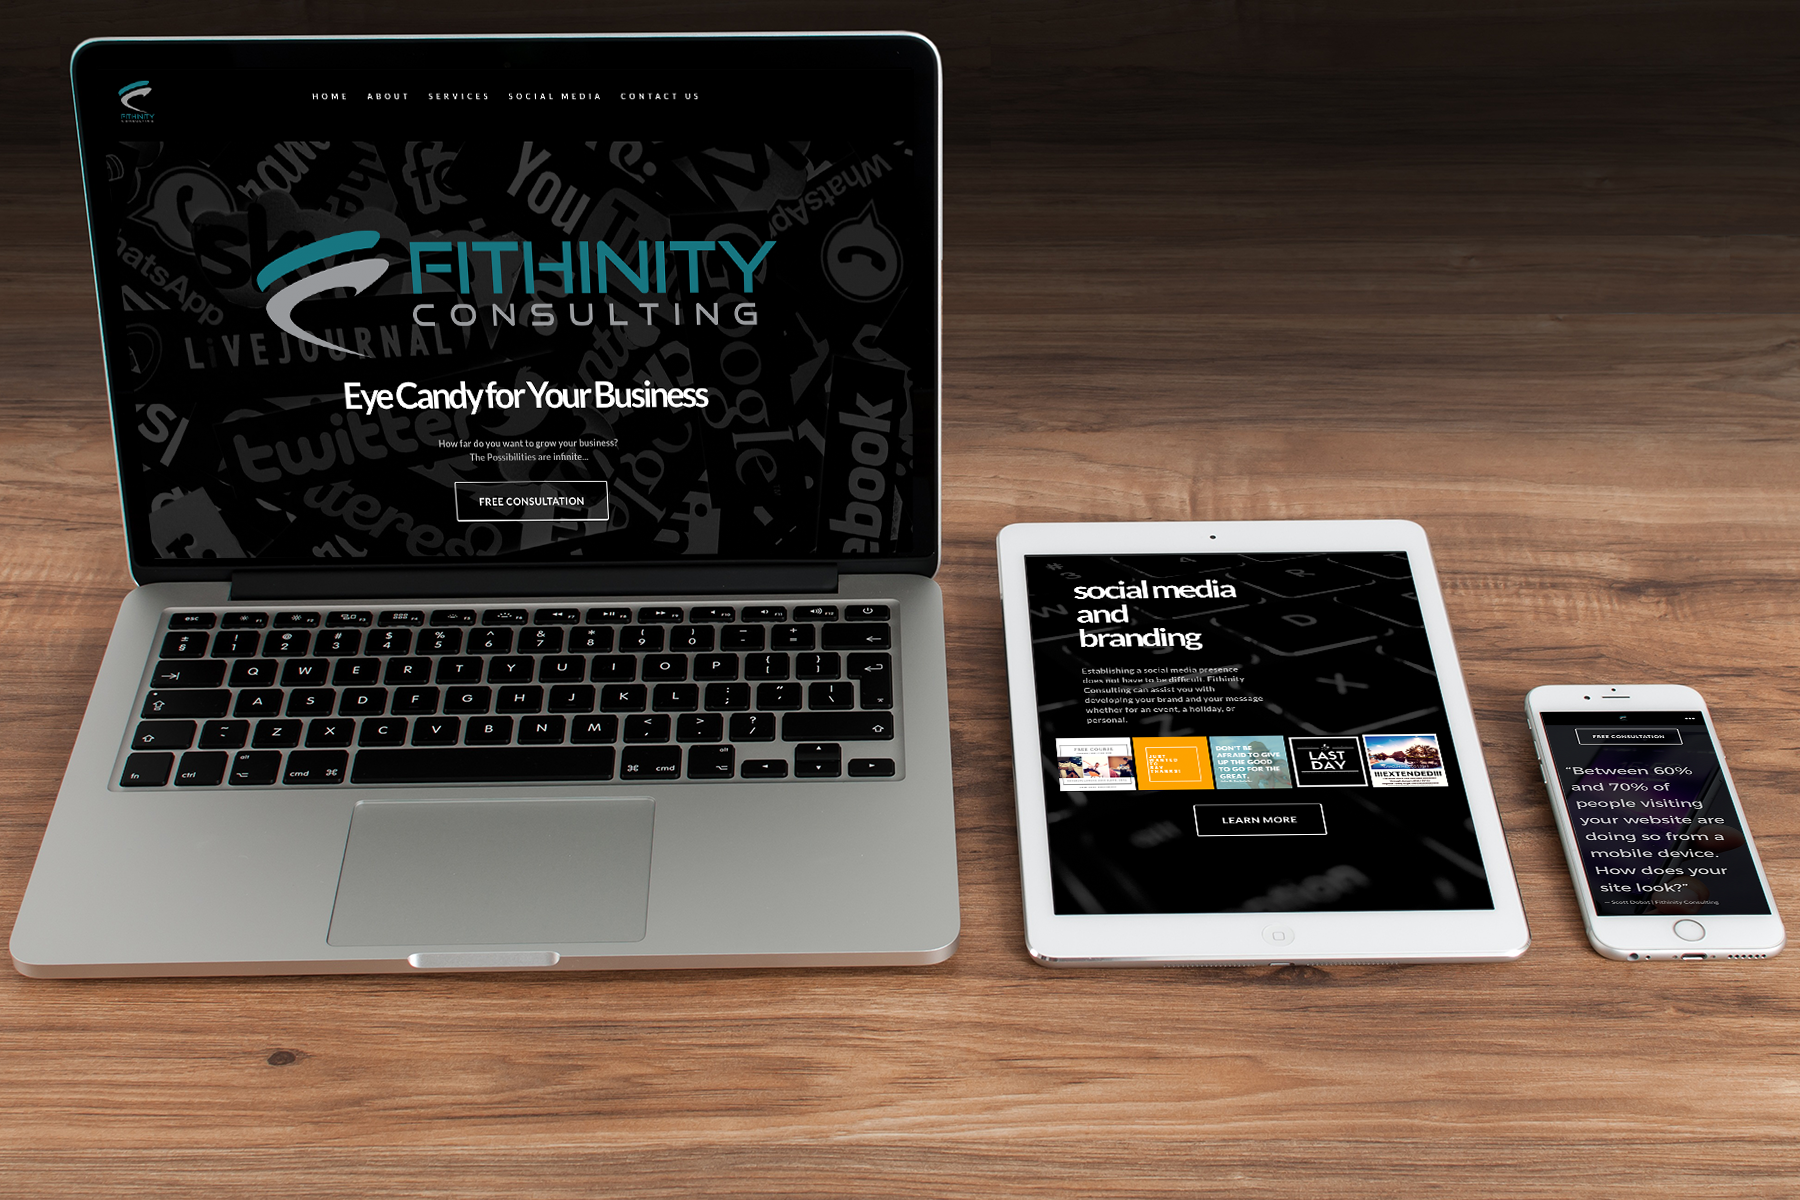 Fithinity Desktop and mobile.png